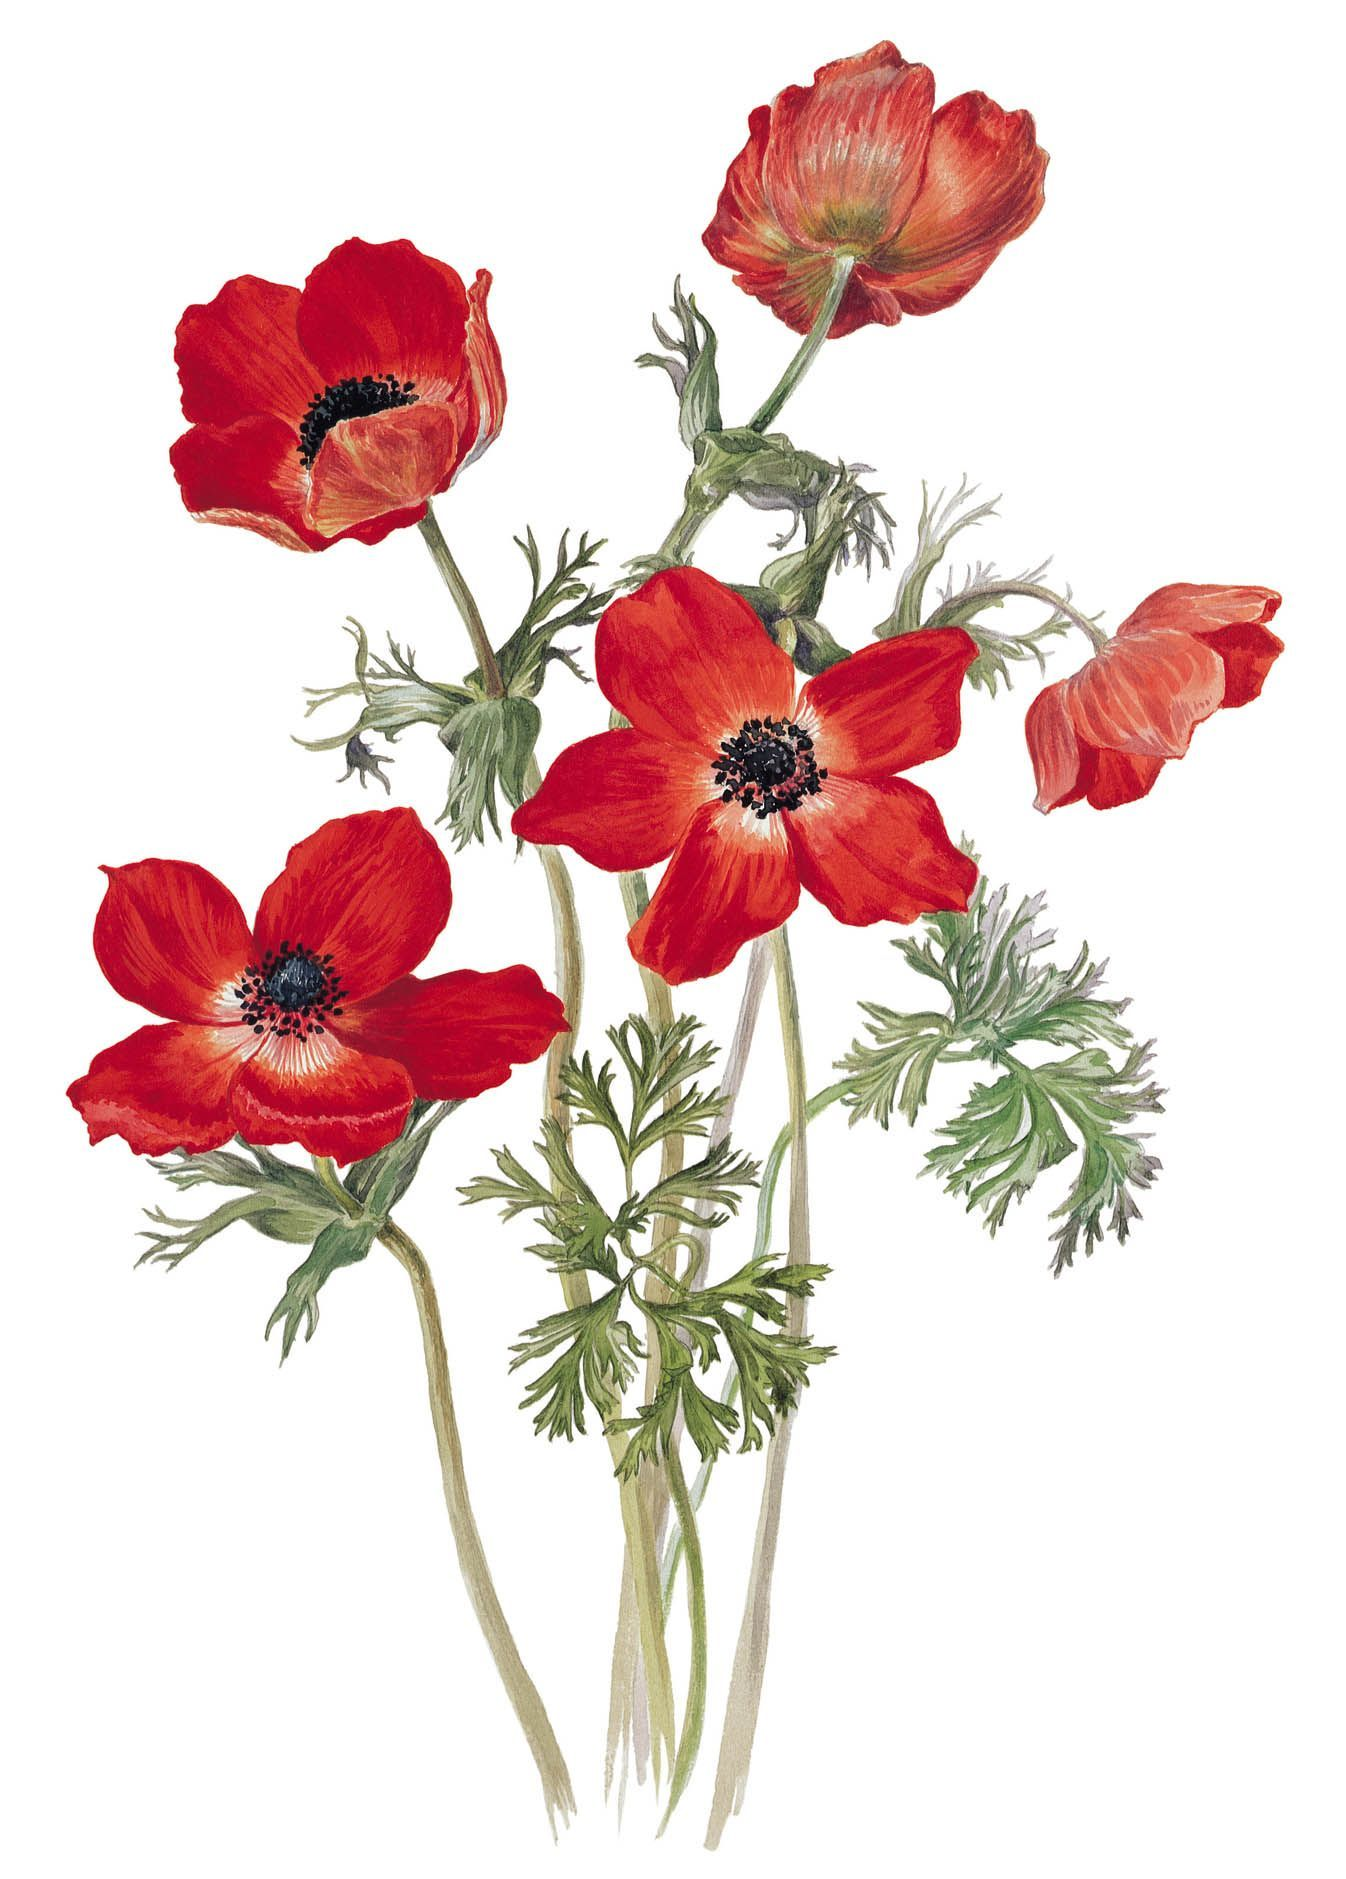 A Drawing Of The Poppy Anemone Anemone Coronaria Var Phoenicia By Edward Augustus Bowles Floral Wall Art Canvases Flower Art